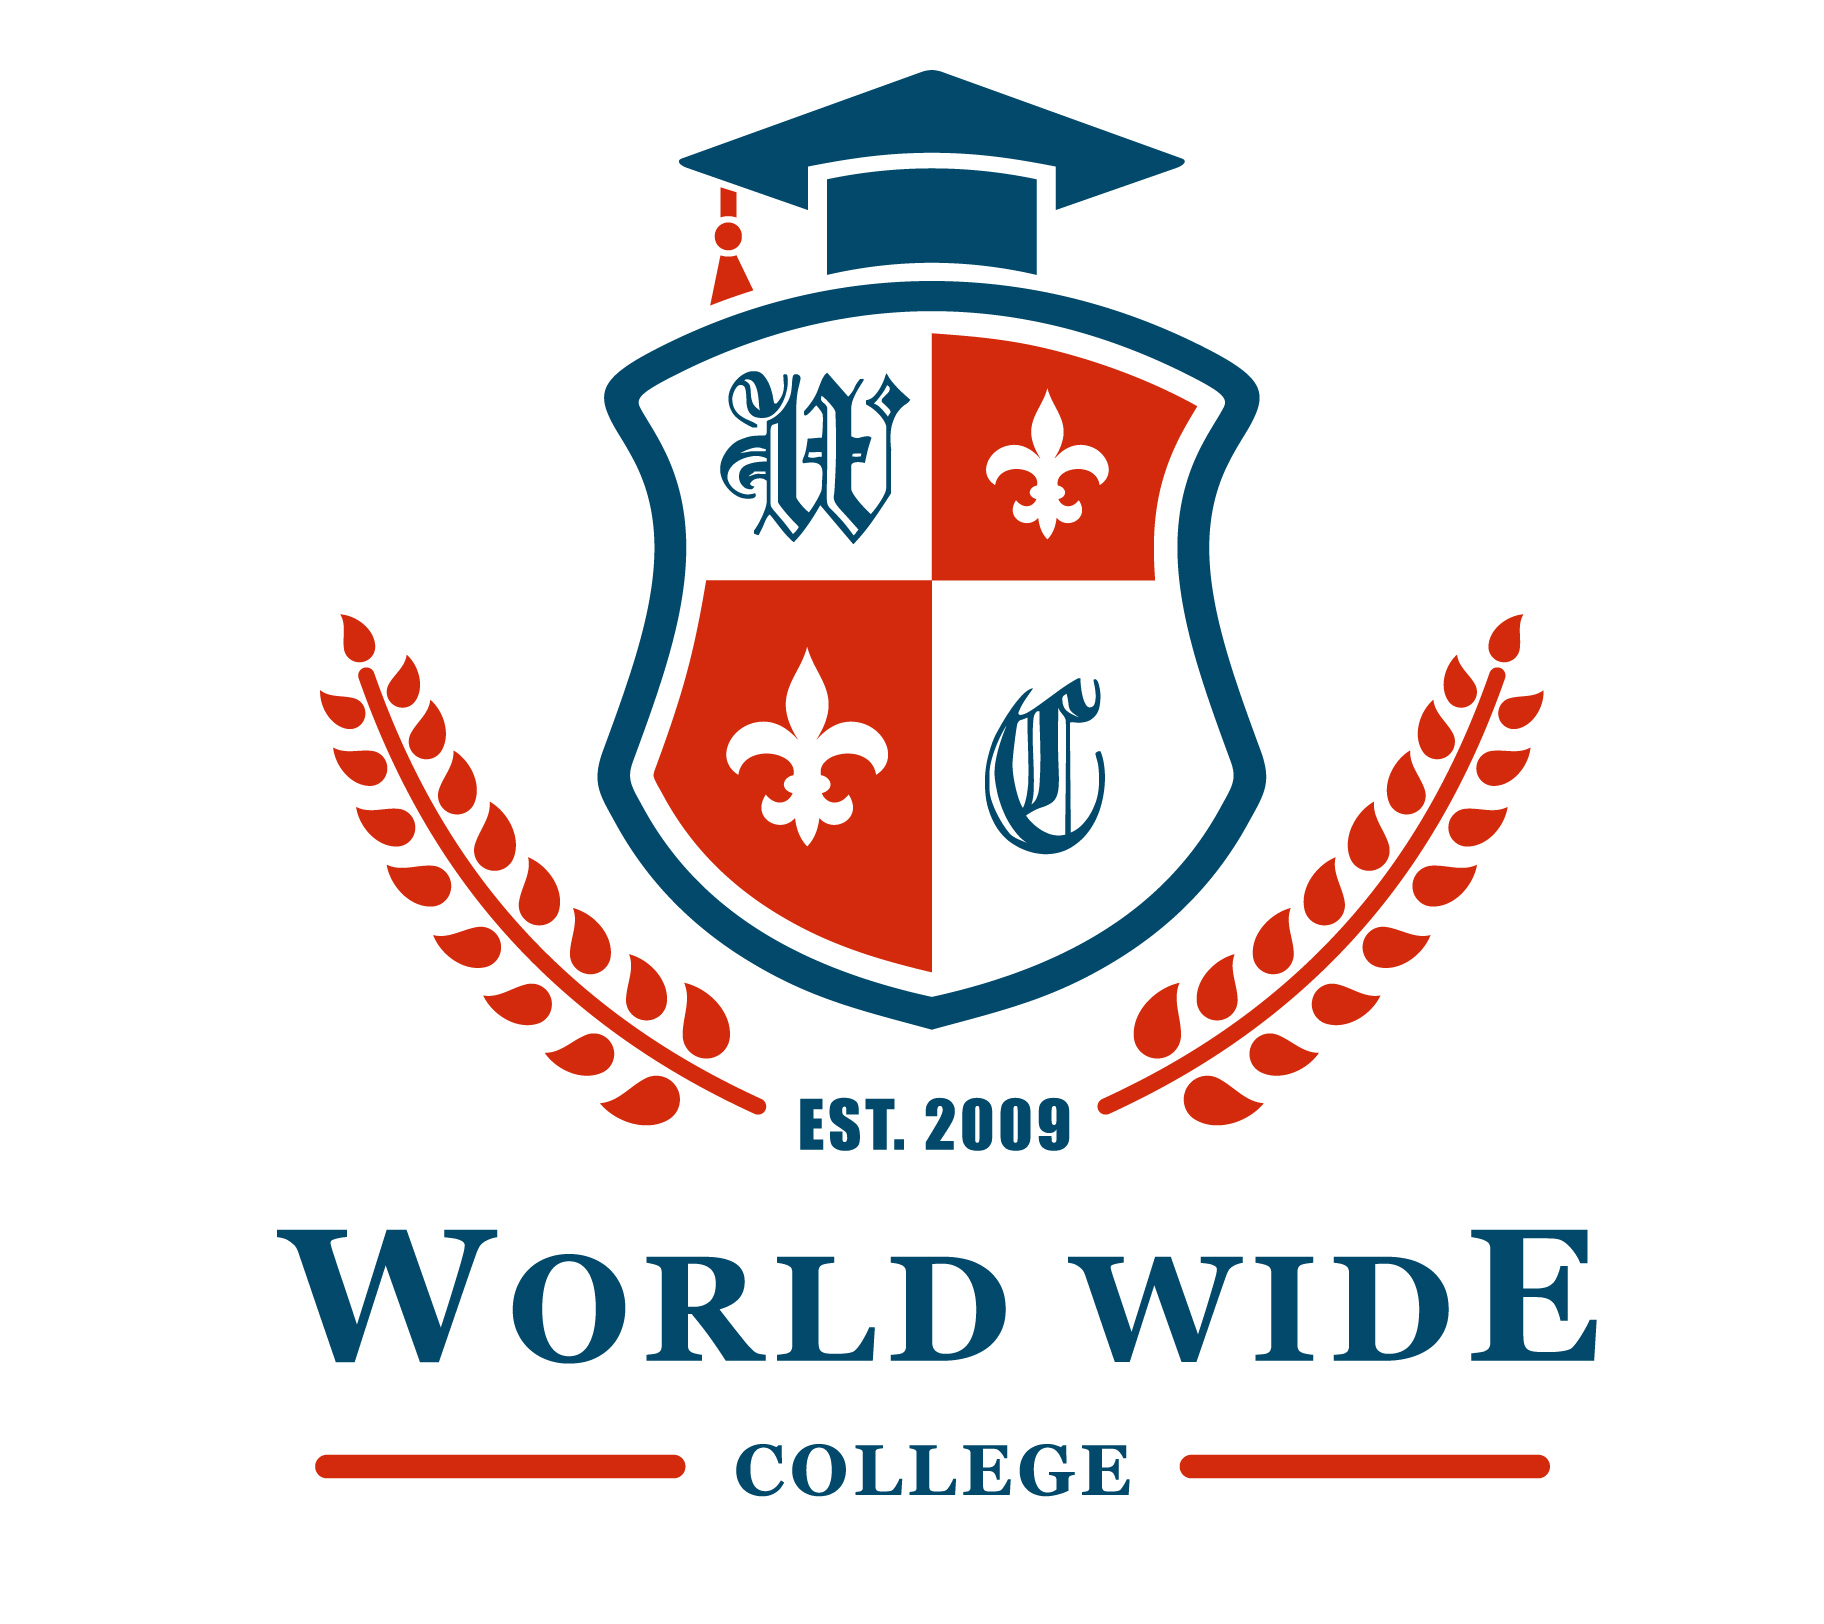 World Wide College